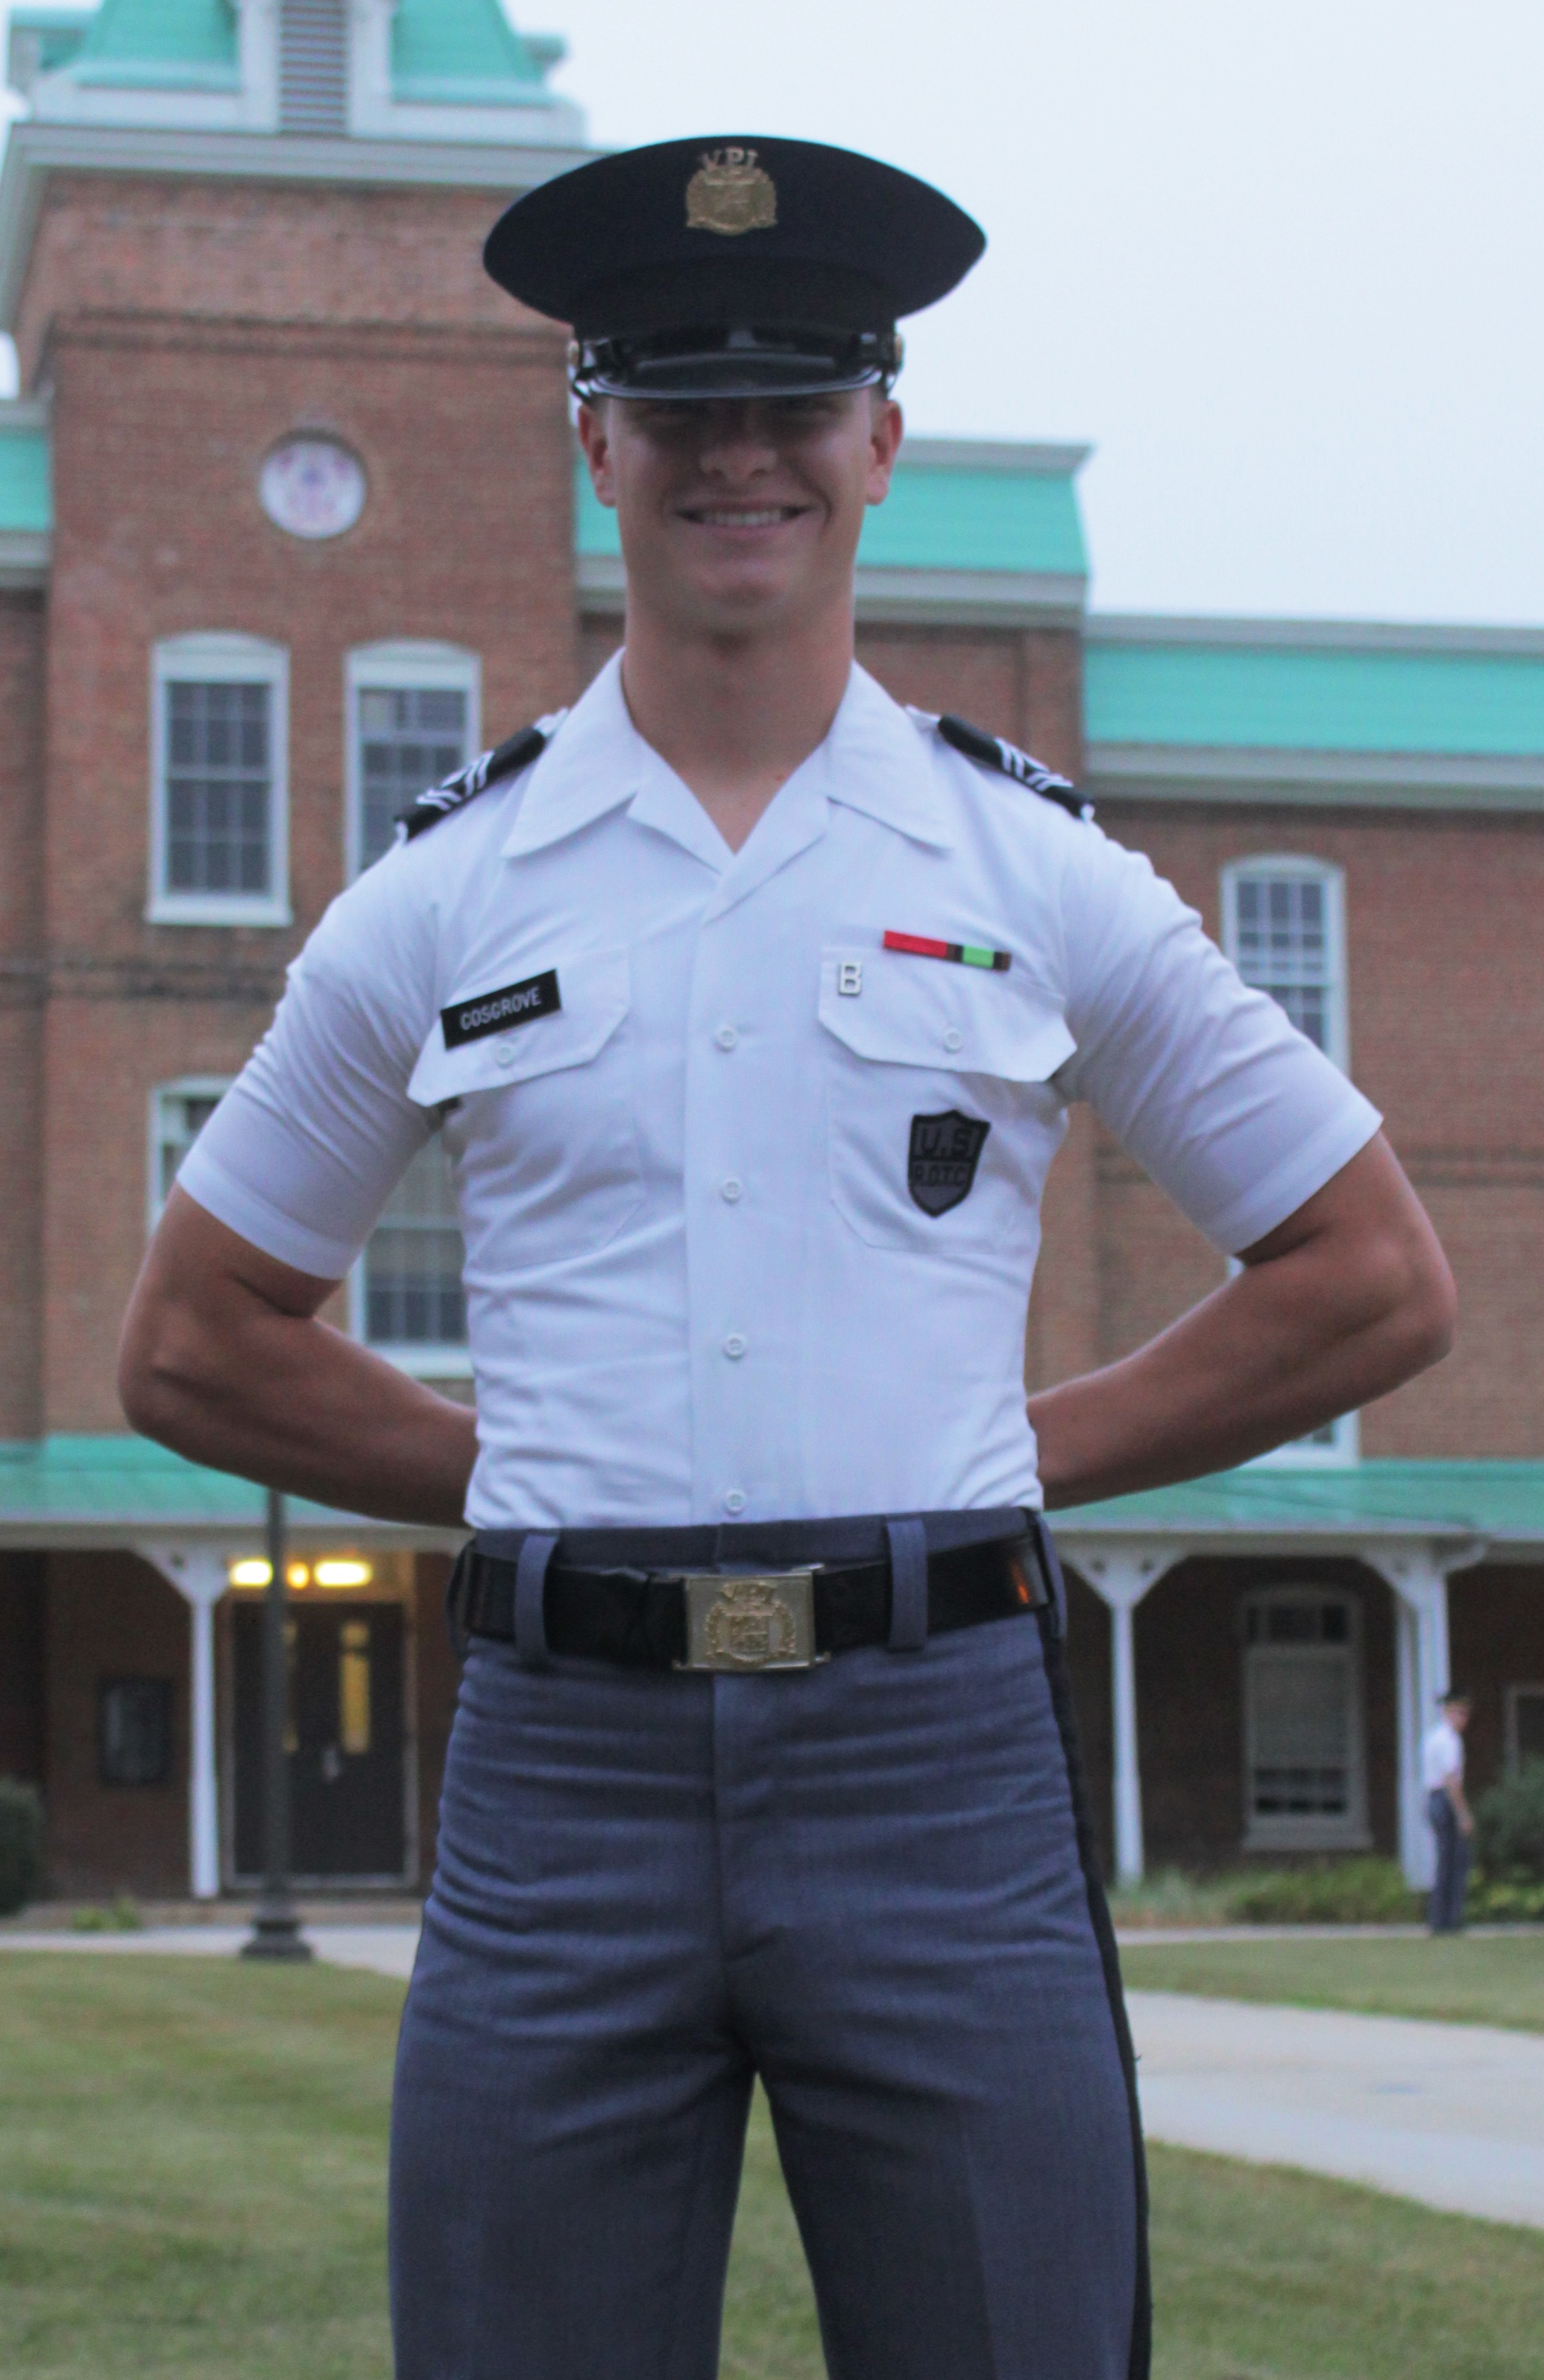 Cadet 1st Sgt. Conor Cosgrove standing in front of Lane Hall.